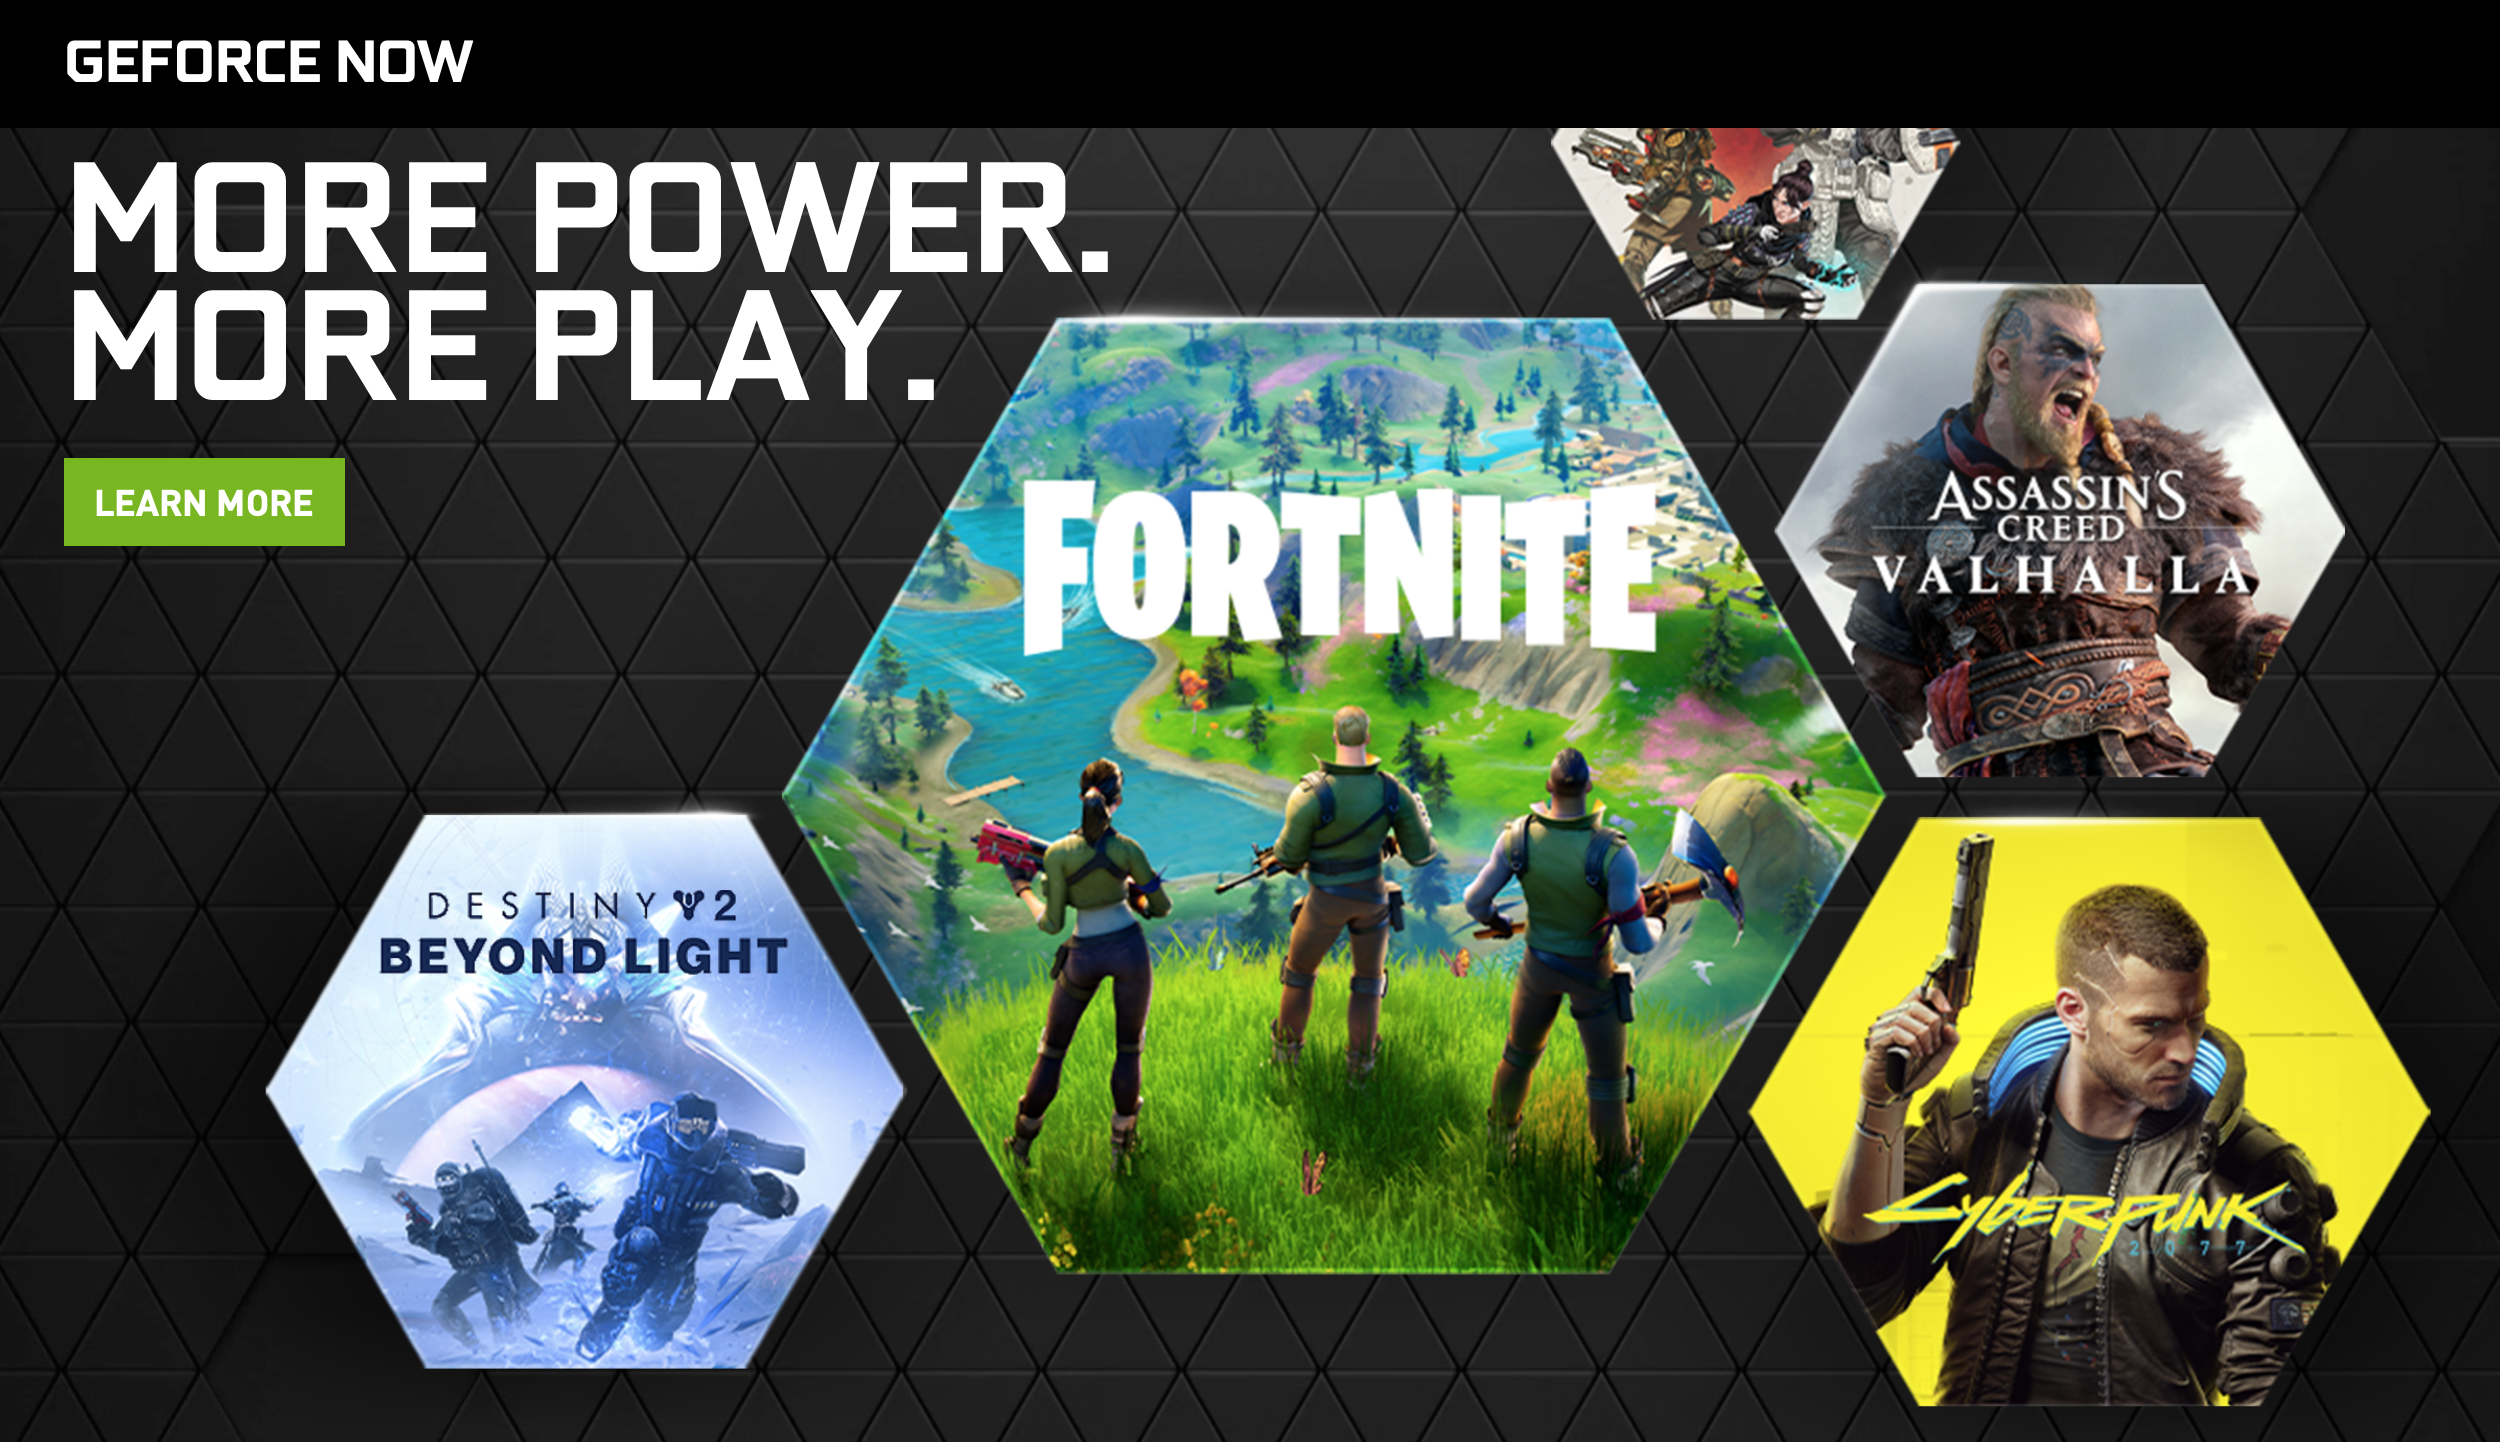 StarHub to launch Nvidia GeForce Now cloud gaming service